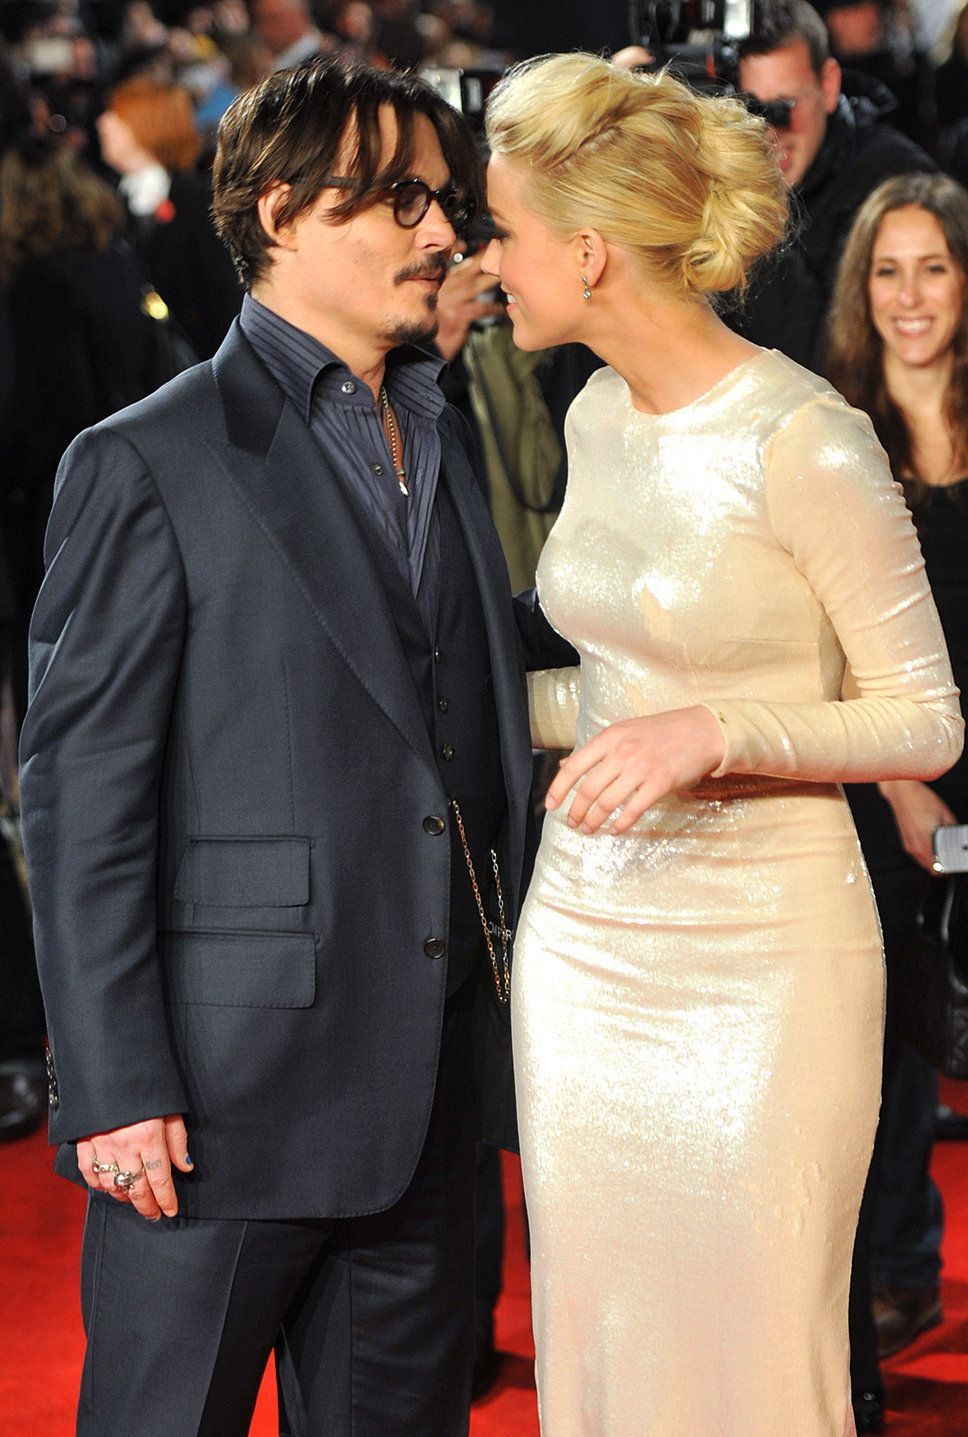 Johnny Depp And Amber Heard At The Premiere Of Rum Diary At Odeon Kensington London England Johnny Depp And Amber Amber Heard Johnny Depp Johnny Depp